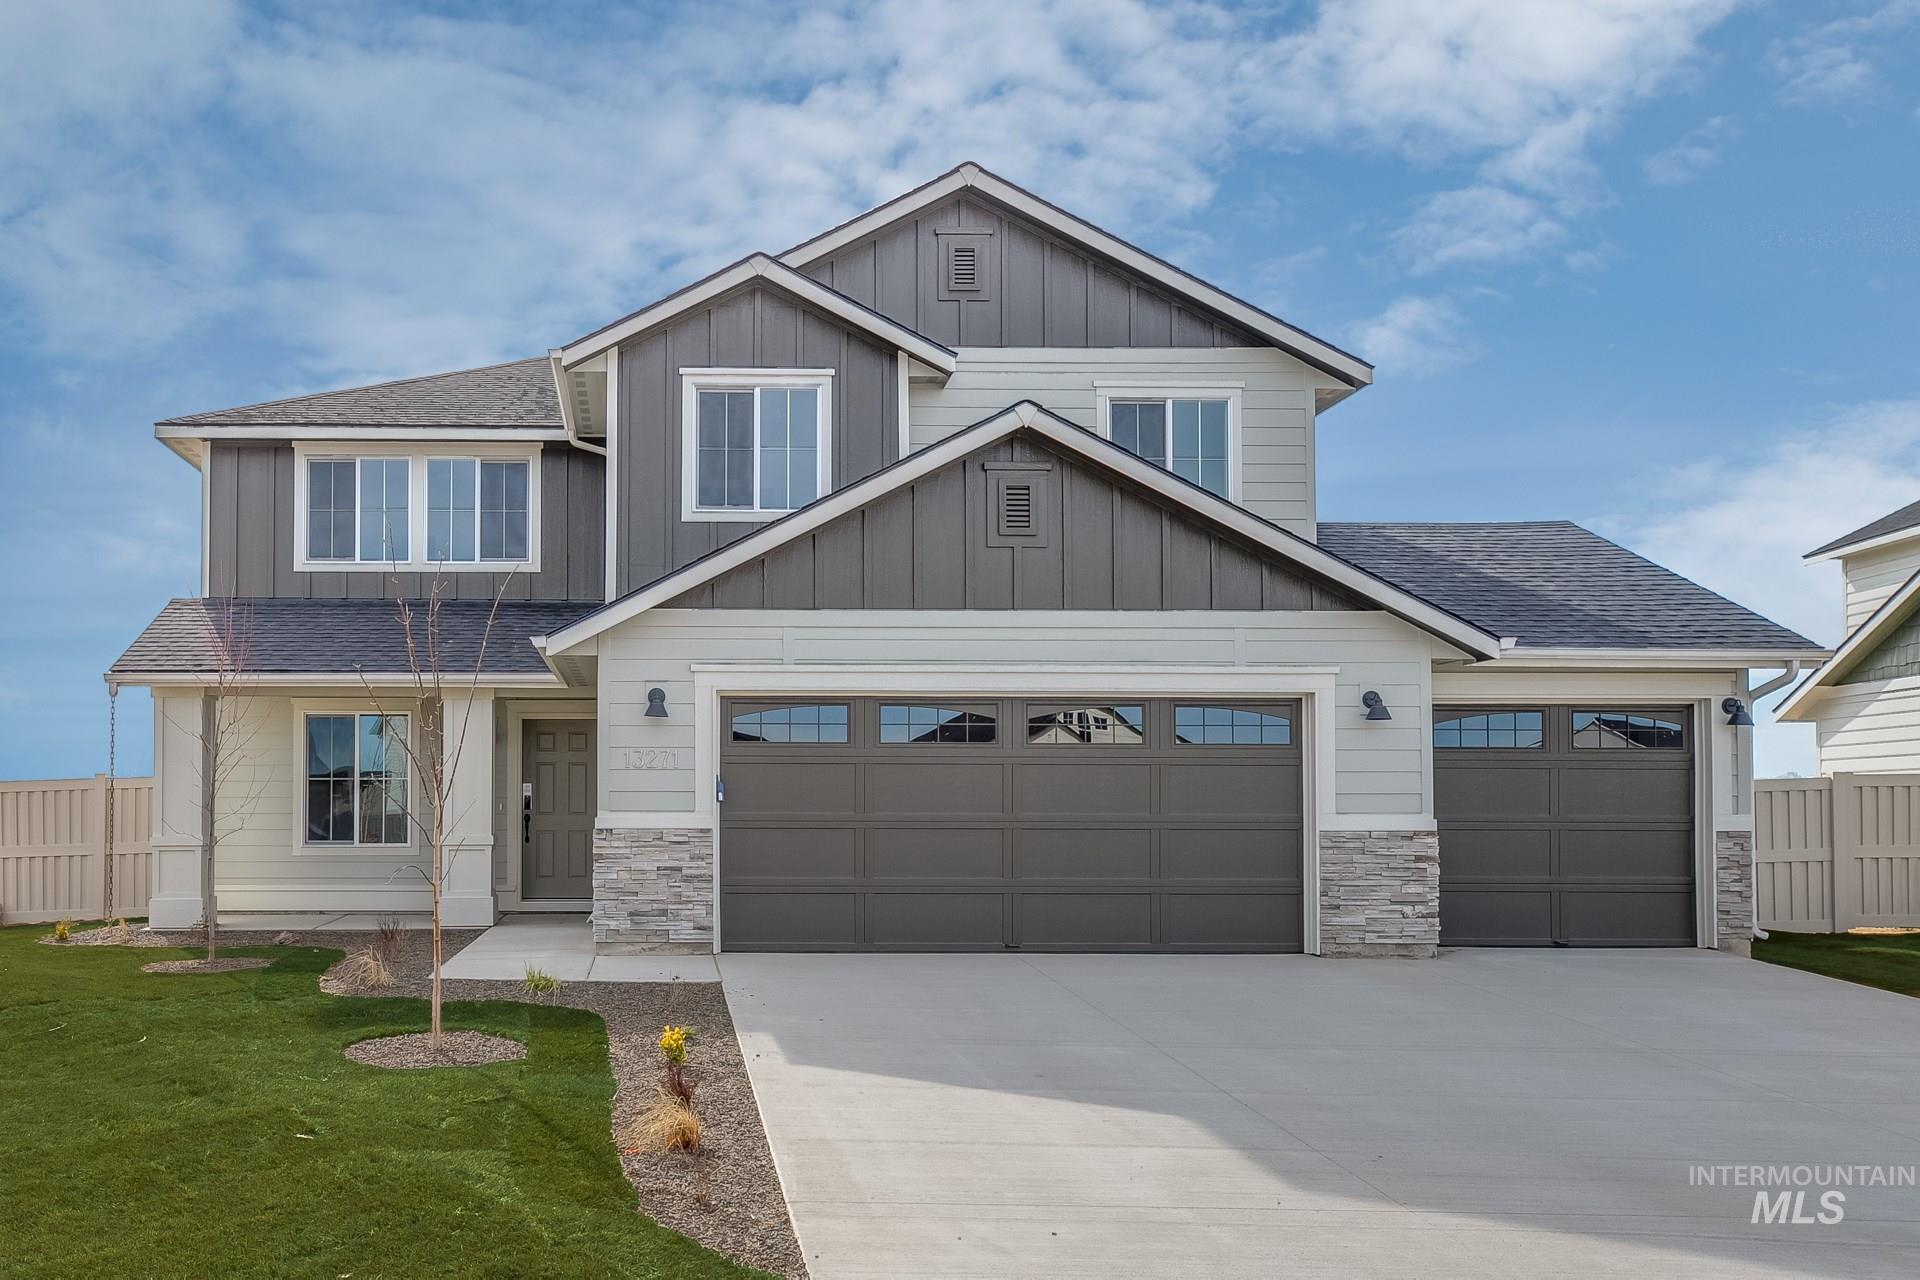 Photo for 949 N Bowknot Lake Ave, Star, ID 83669 (MLS # 98781459)